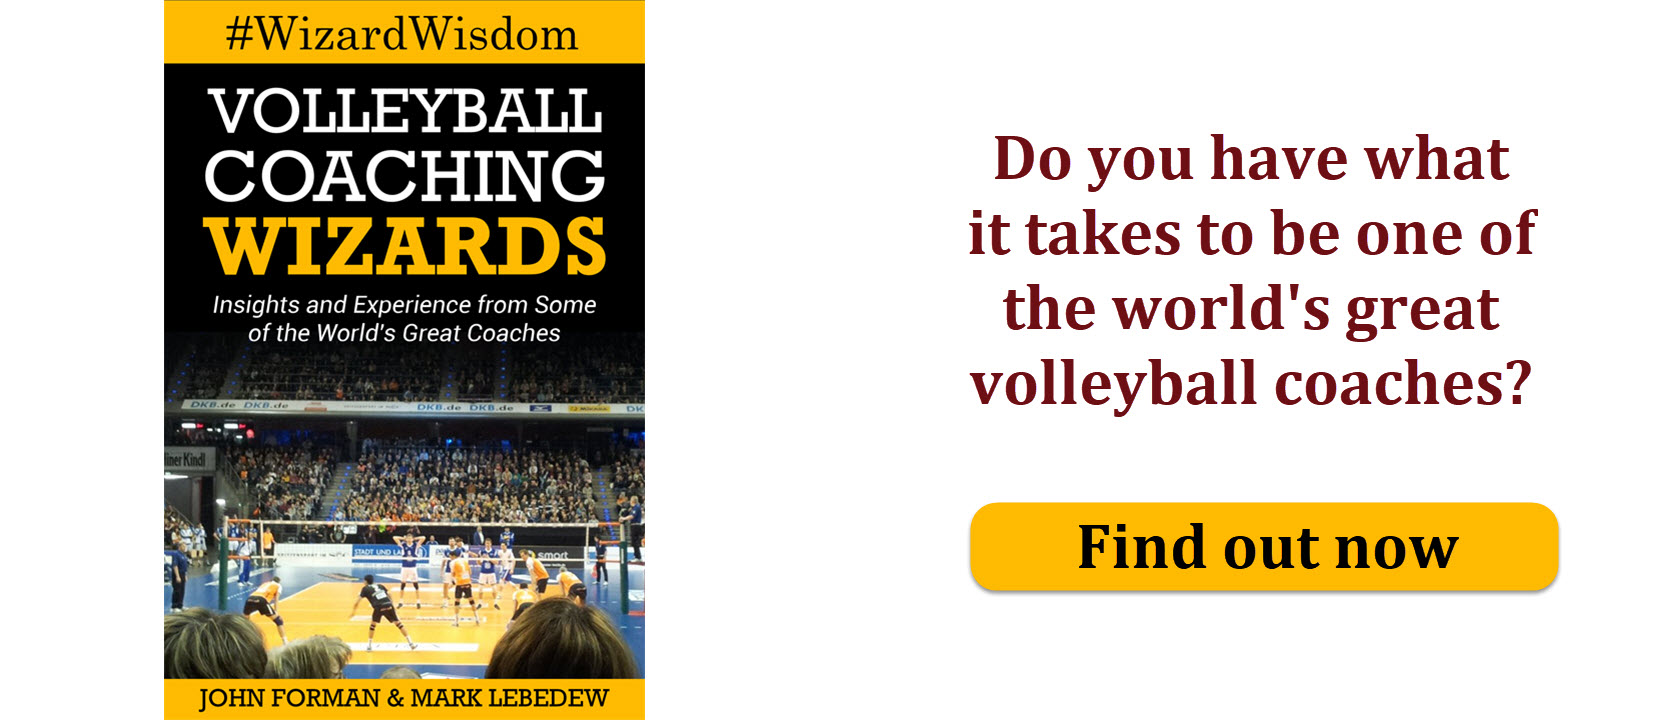 Could you be one of the world's great volleyball coaches? Click to find out.